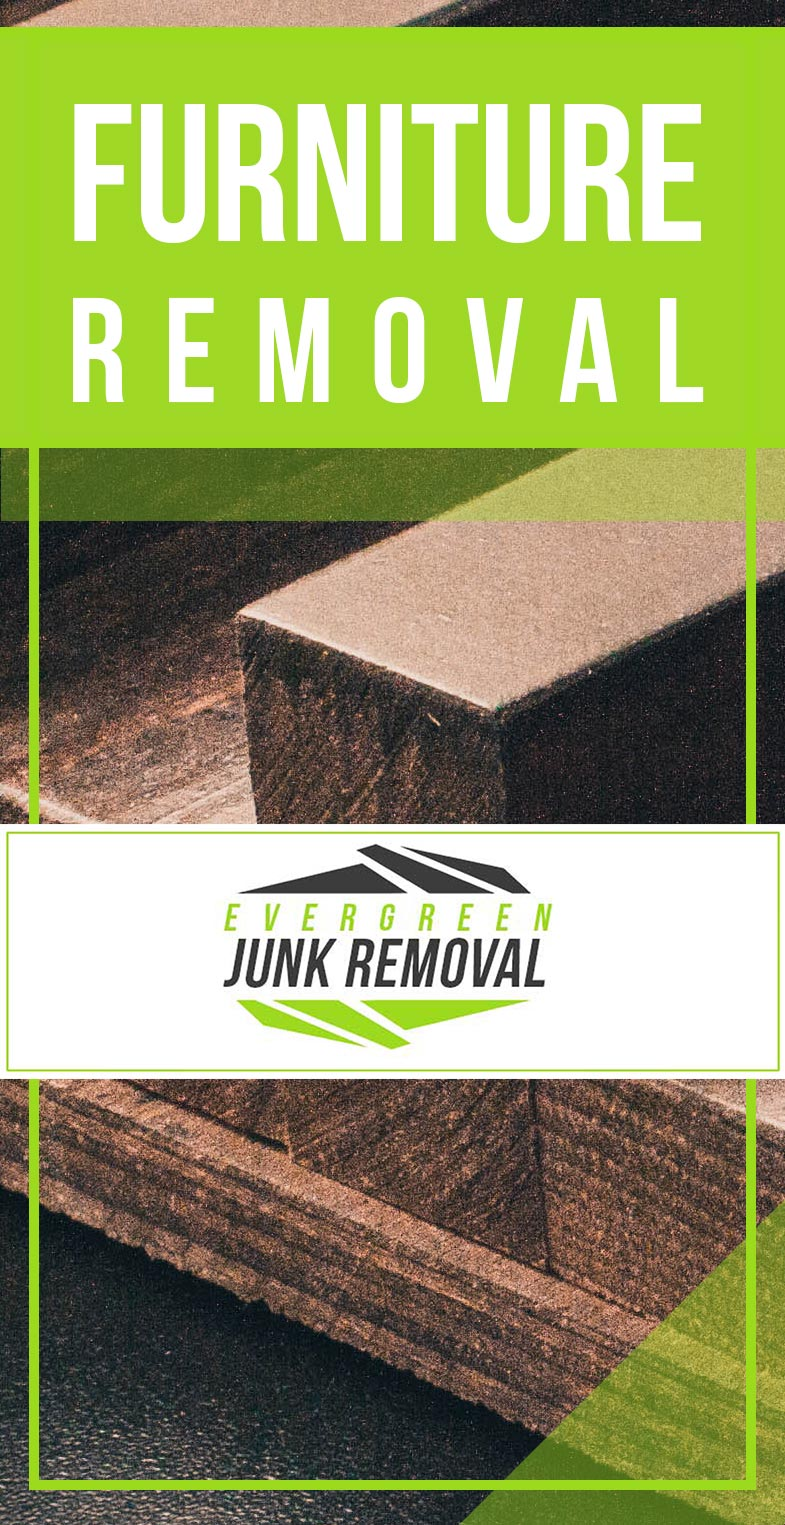 Junk Removal Plantation Furniture Removal